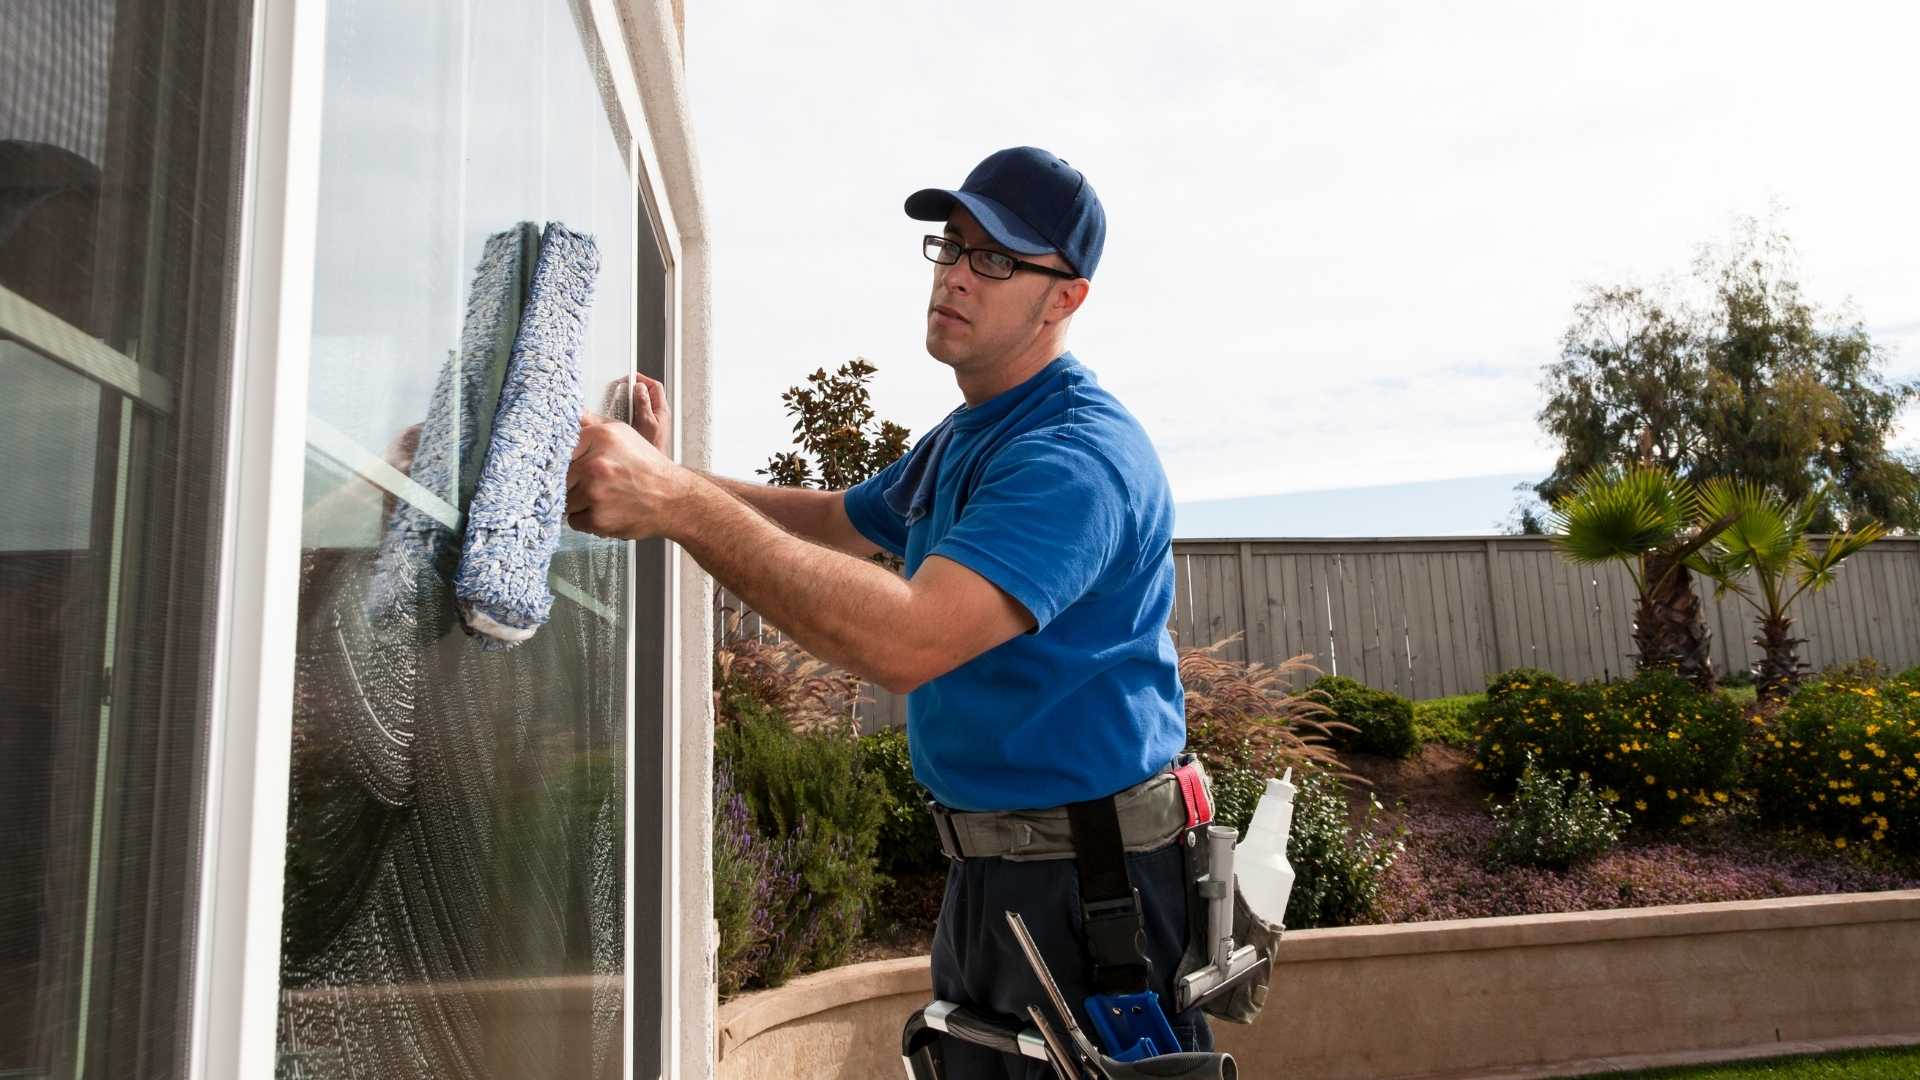 window cleaning services auckland kleenco